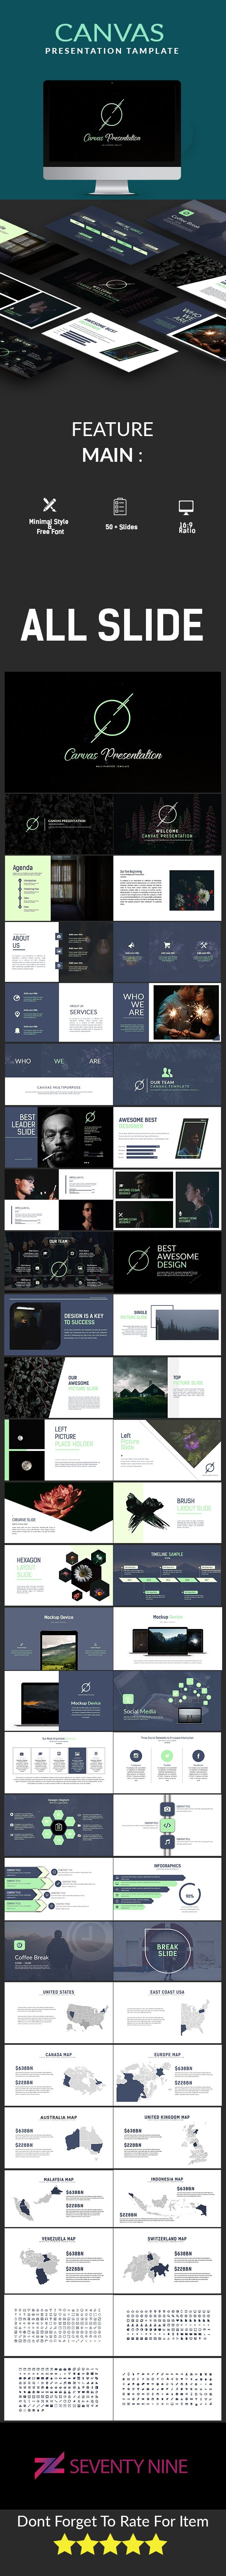 Canvas multipurpose keynote template ccuart Gallery